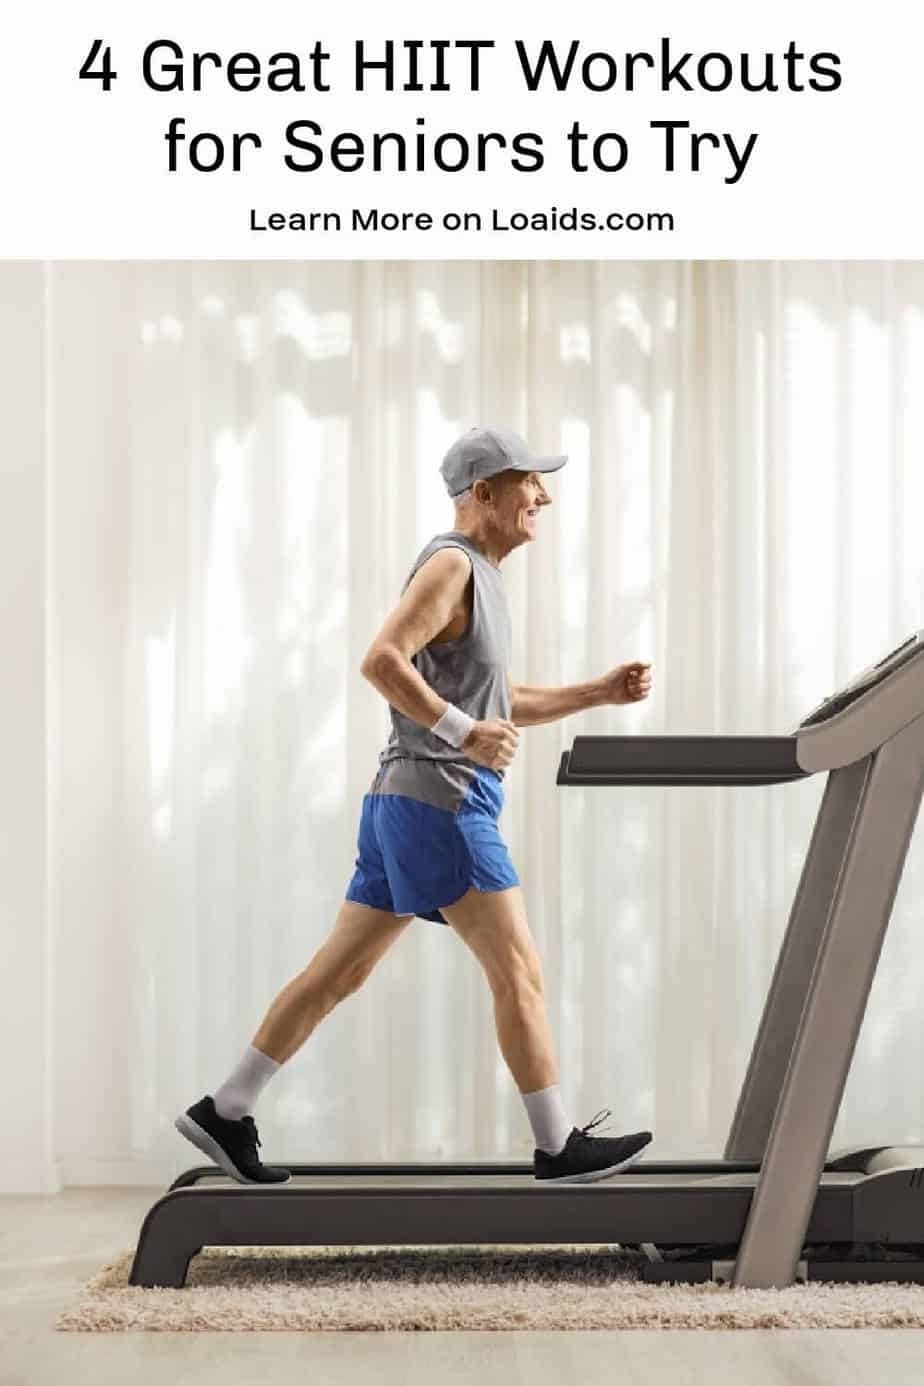 Do you think HIIT workouts for seniors are possible? Read this guide to answer that question plus check out 4 great workouts to try!